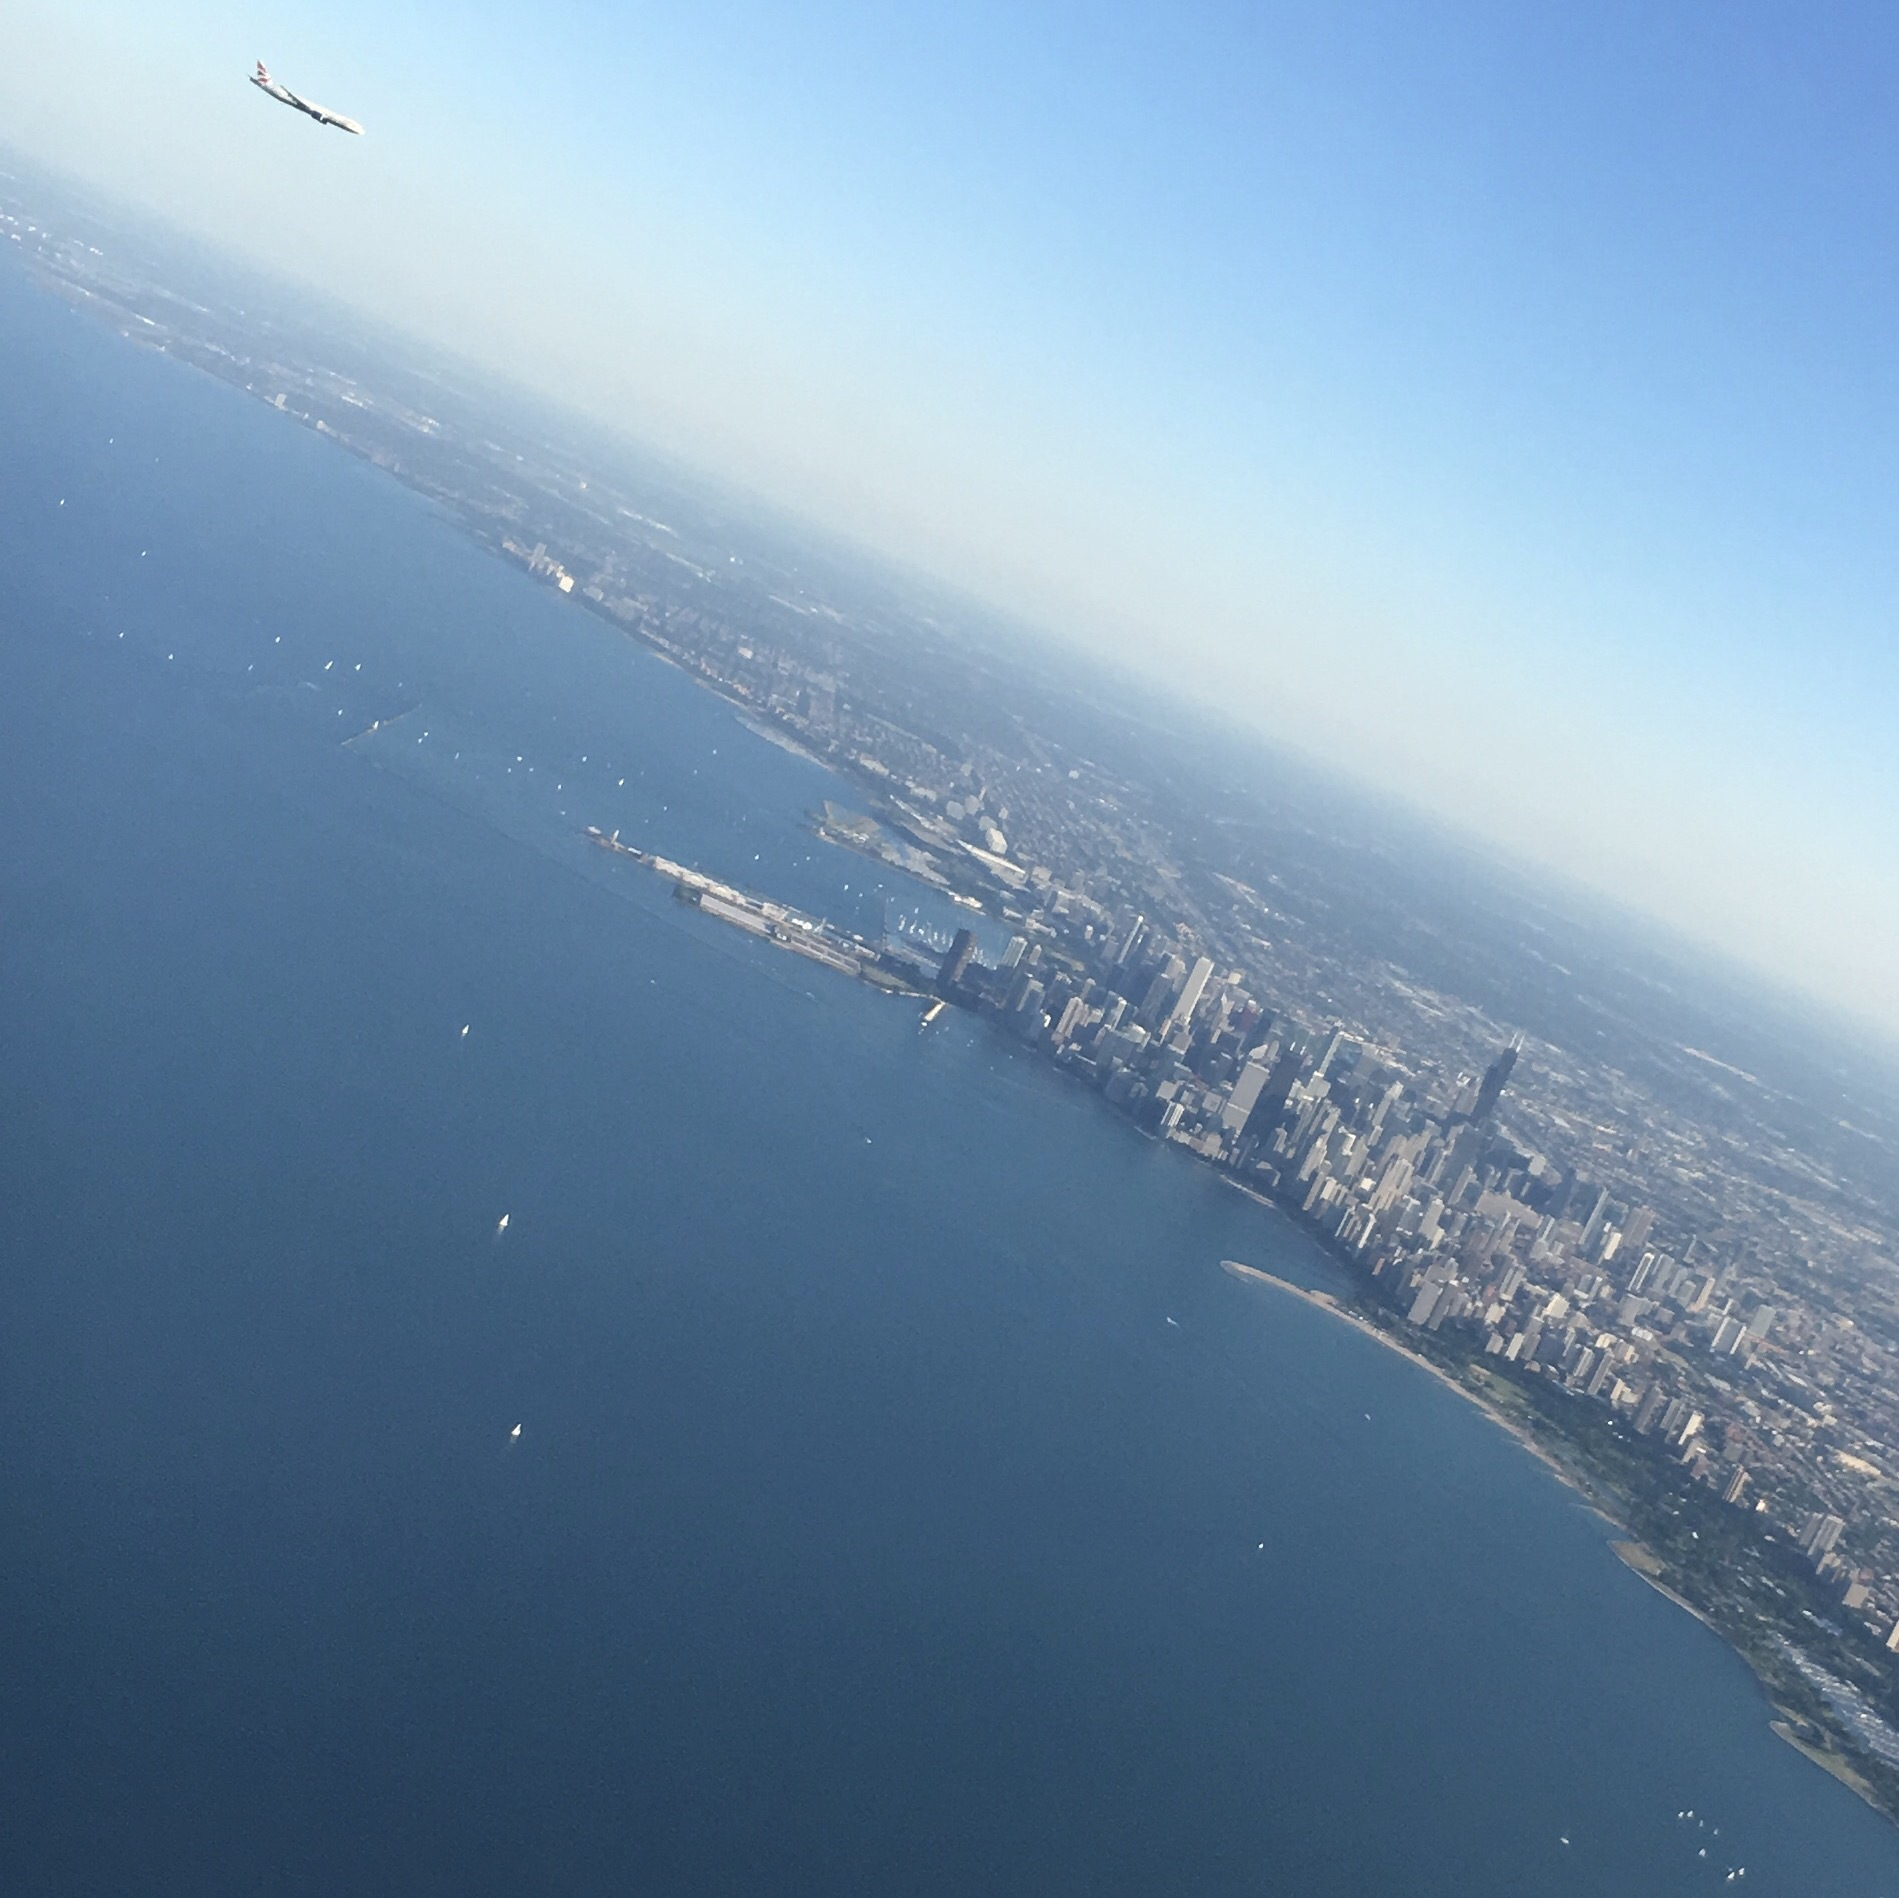 Photo taken from a plane with another plane on the left landing in Chicago. by hazemalwajeeh13